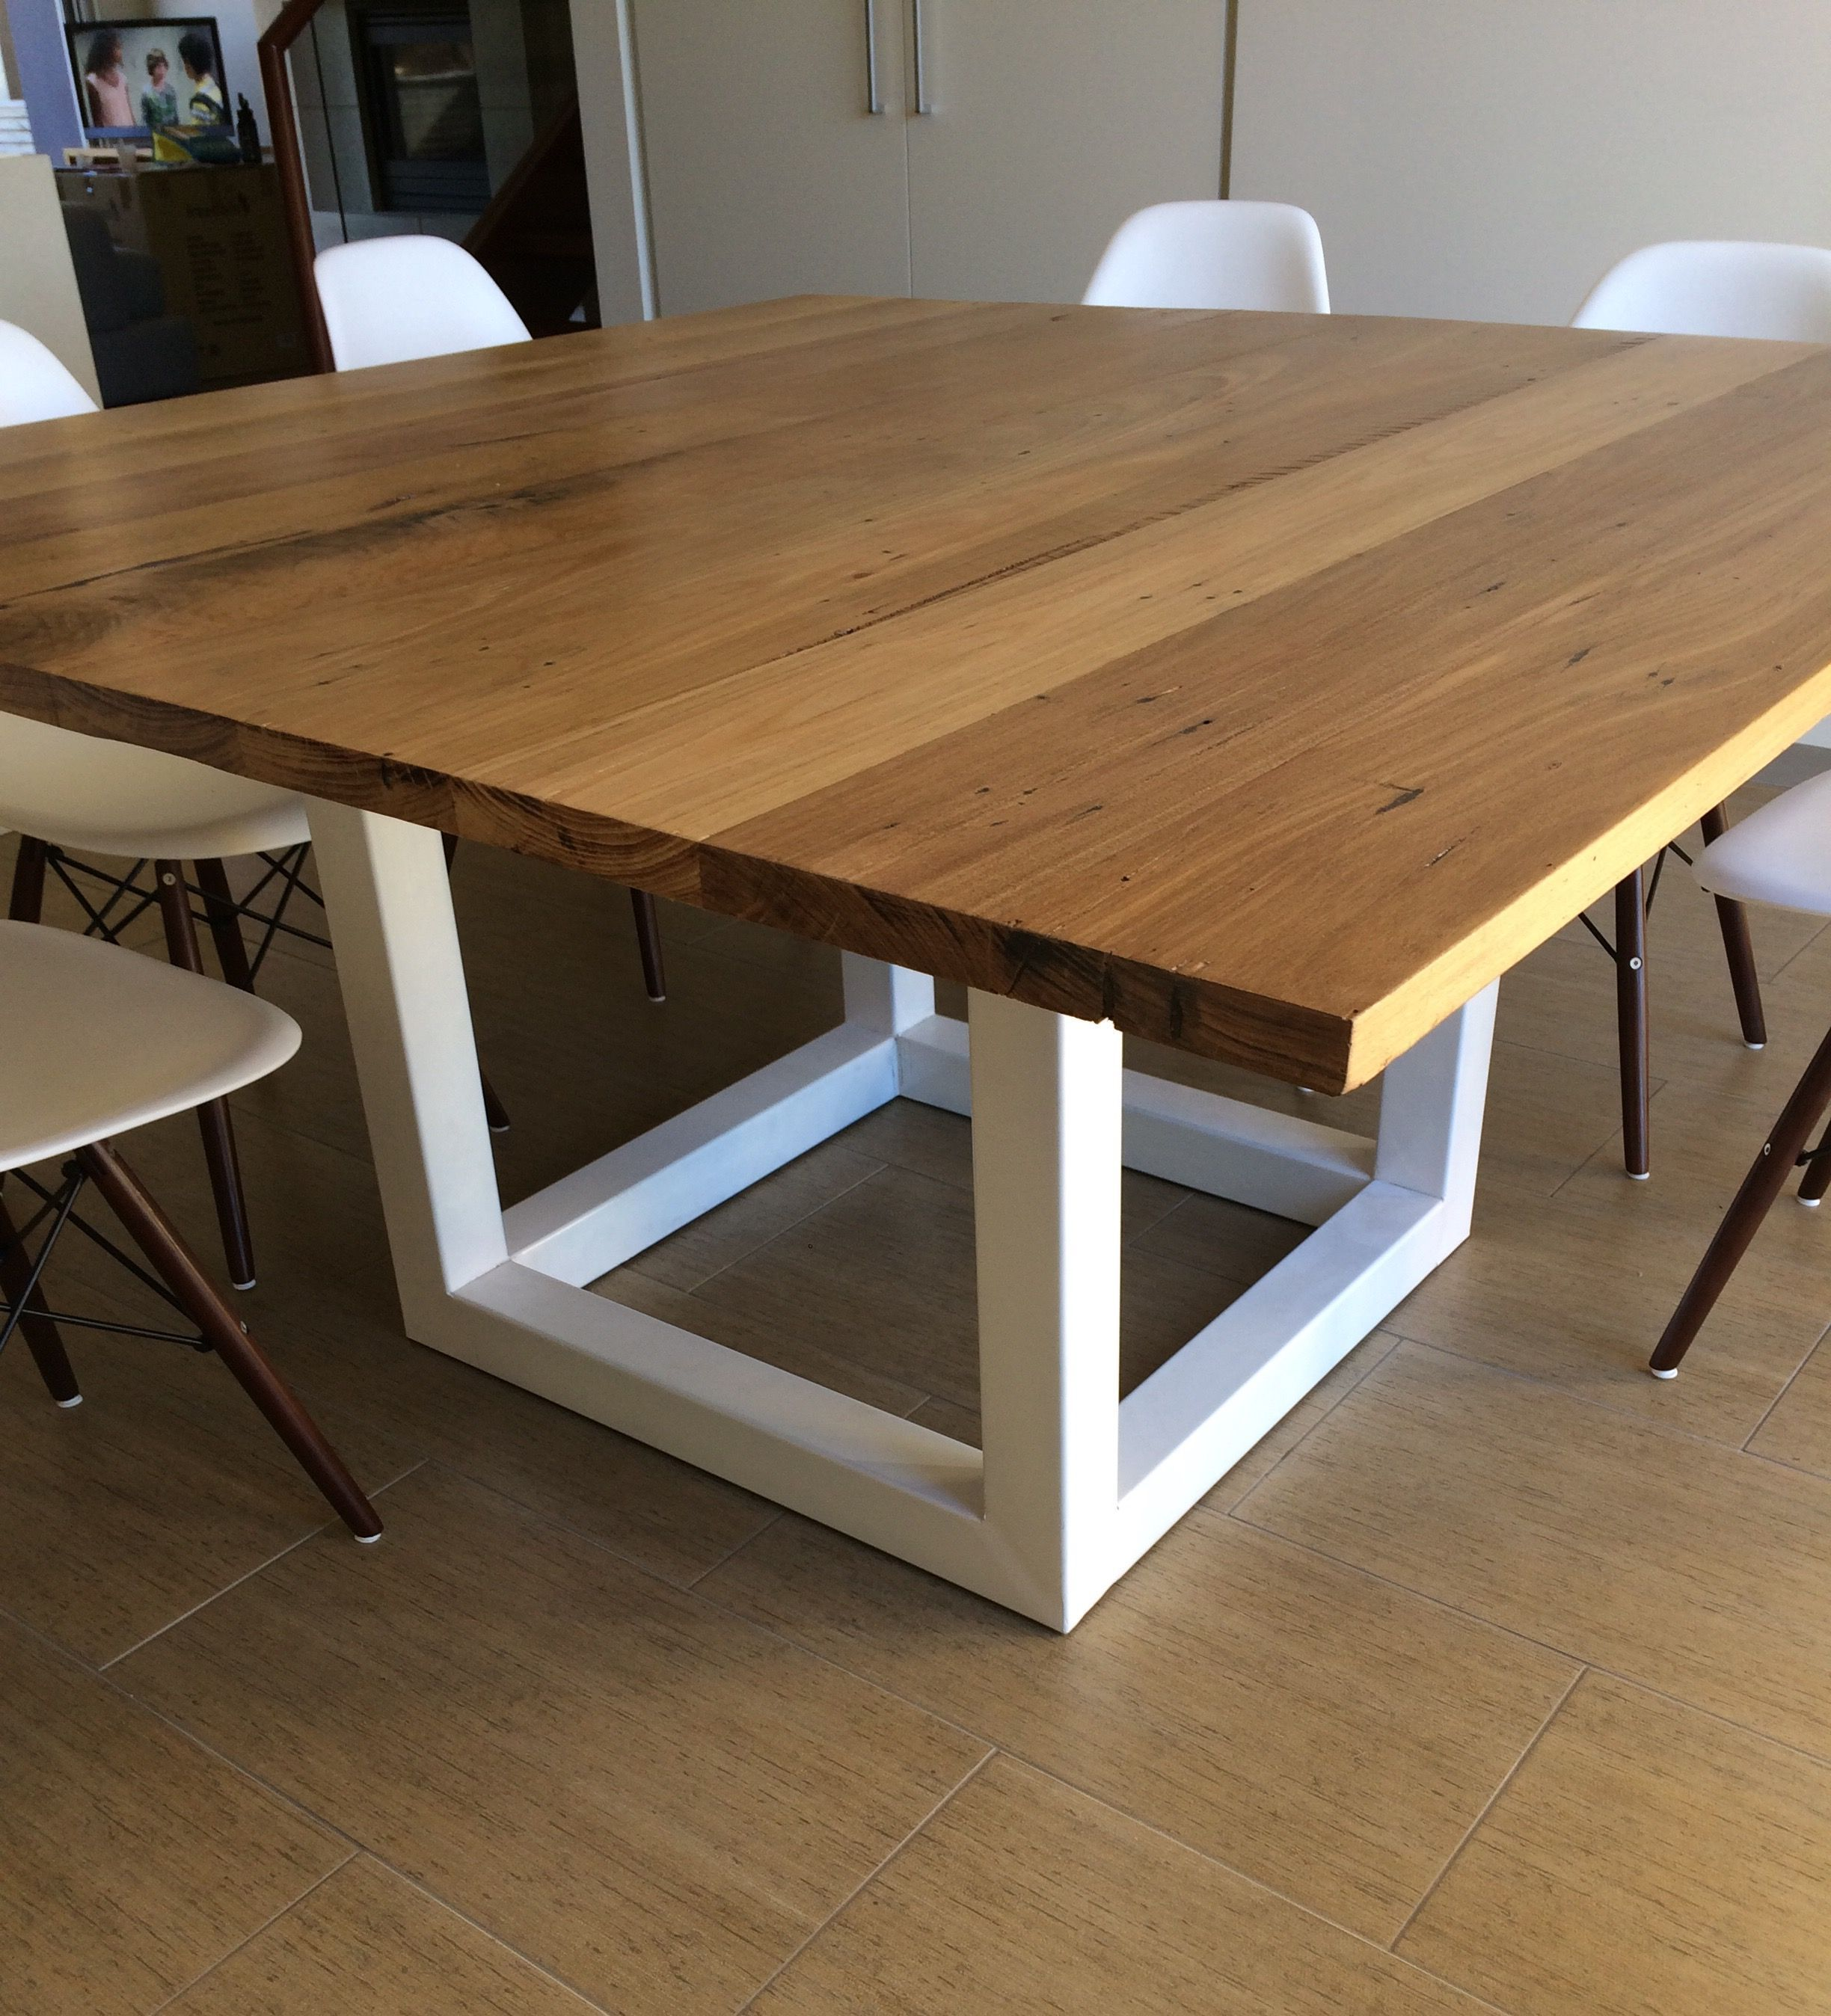 Image Result For Metal And Wood Dining Table Square Square